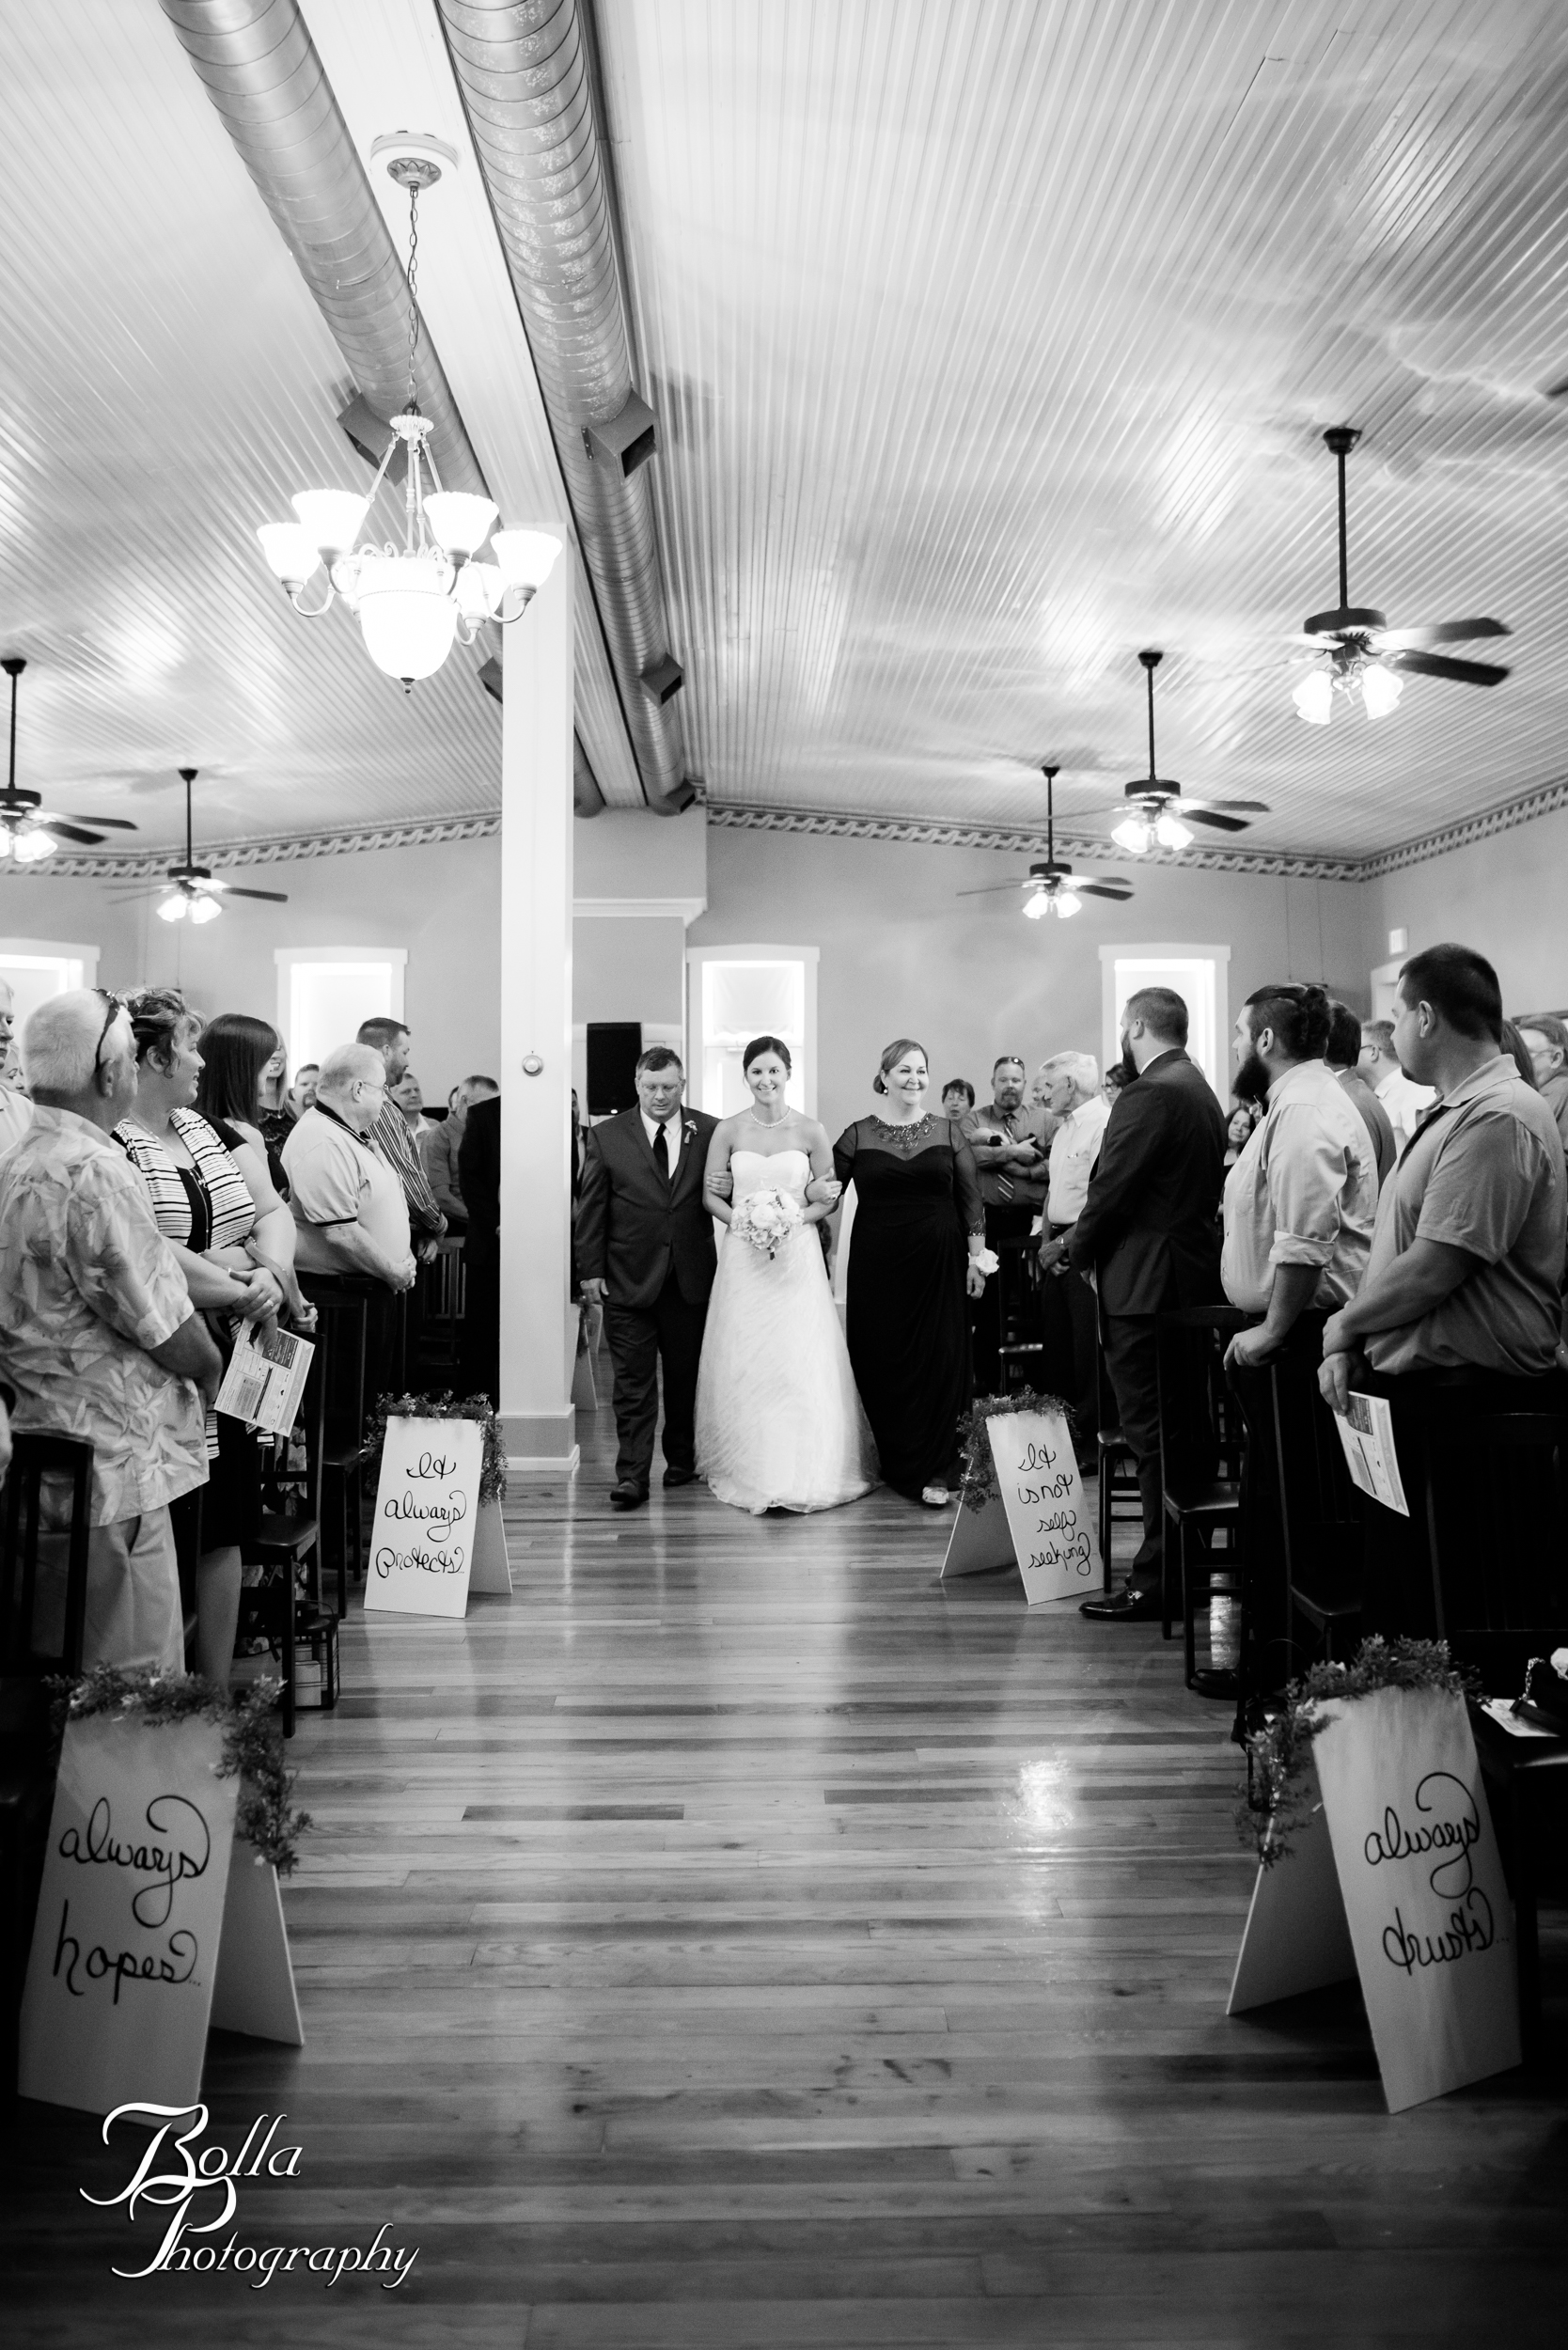 Bolla_photography_edwardsville_wedding_photographer_st_louis_weddings_Jessica_Barbachem_Dillon_Kaesberg_Waterloo_Red_Bud-0168.jpg